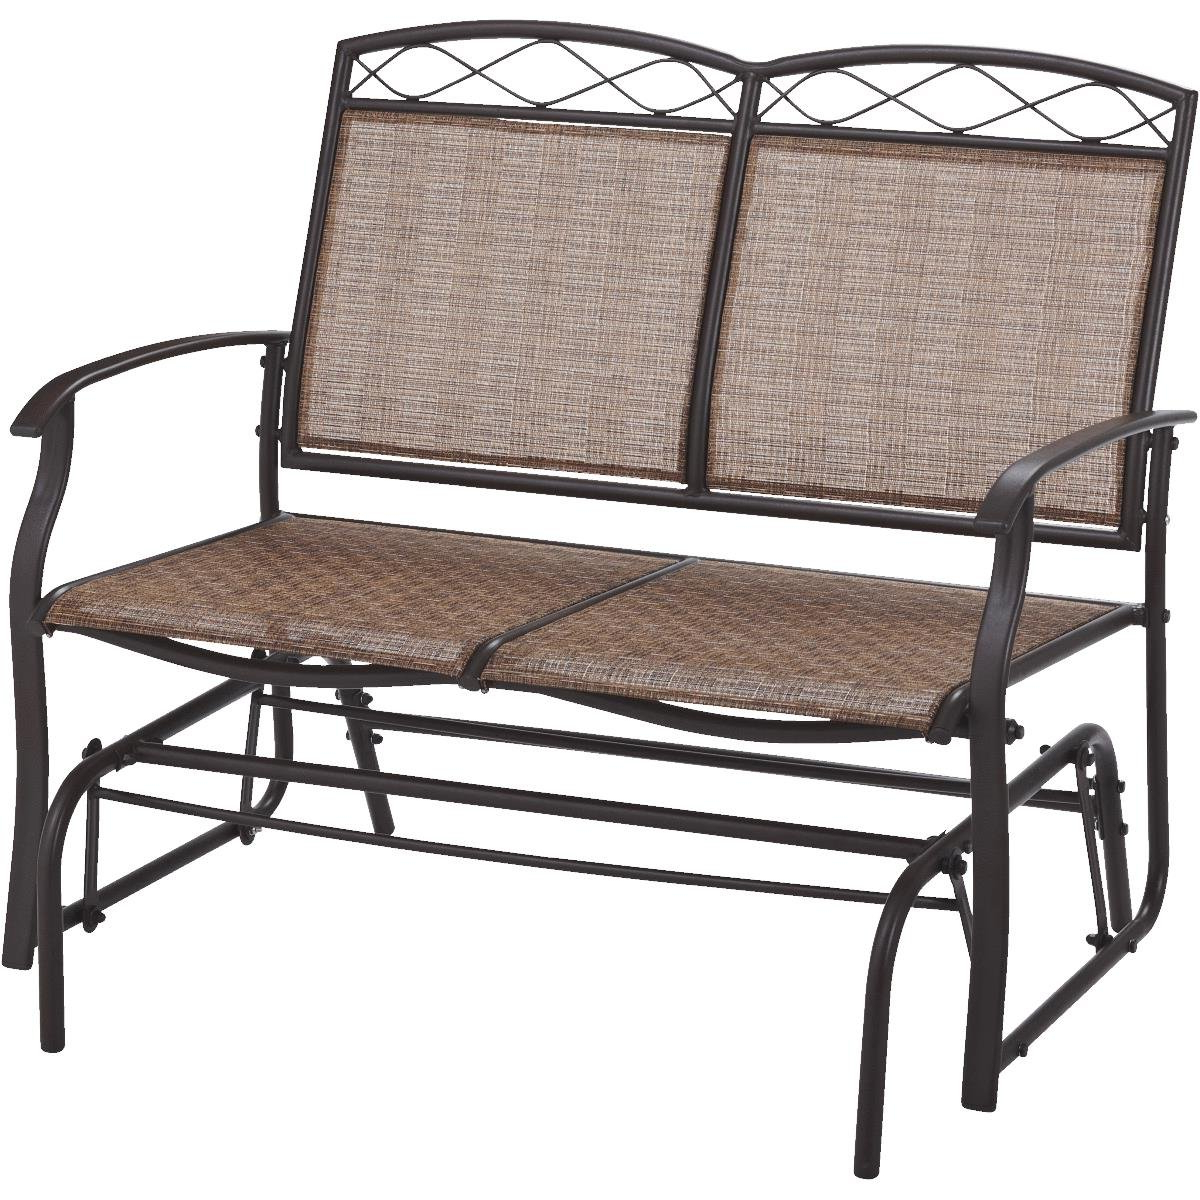 Latest Metal Powder Coat Double Seat Glider Benches With Do It Best Gs Tjf T011 Greenville Double Glider (View 11 of 30)